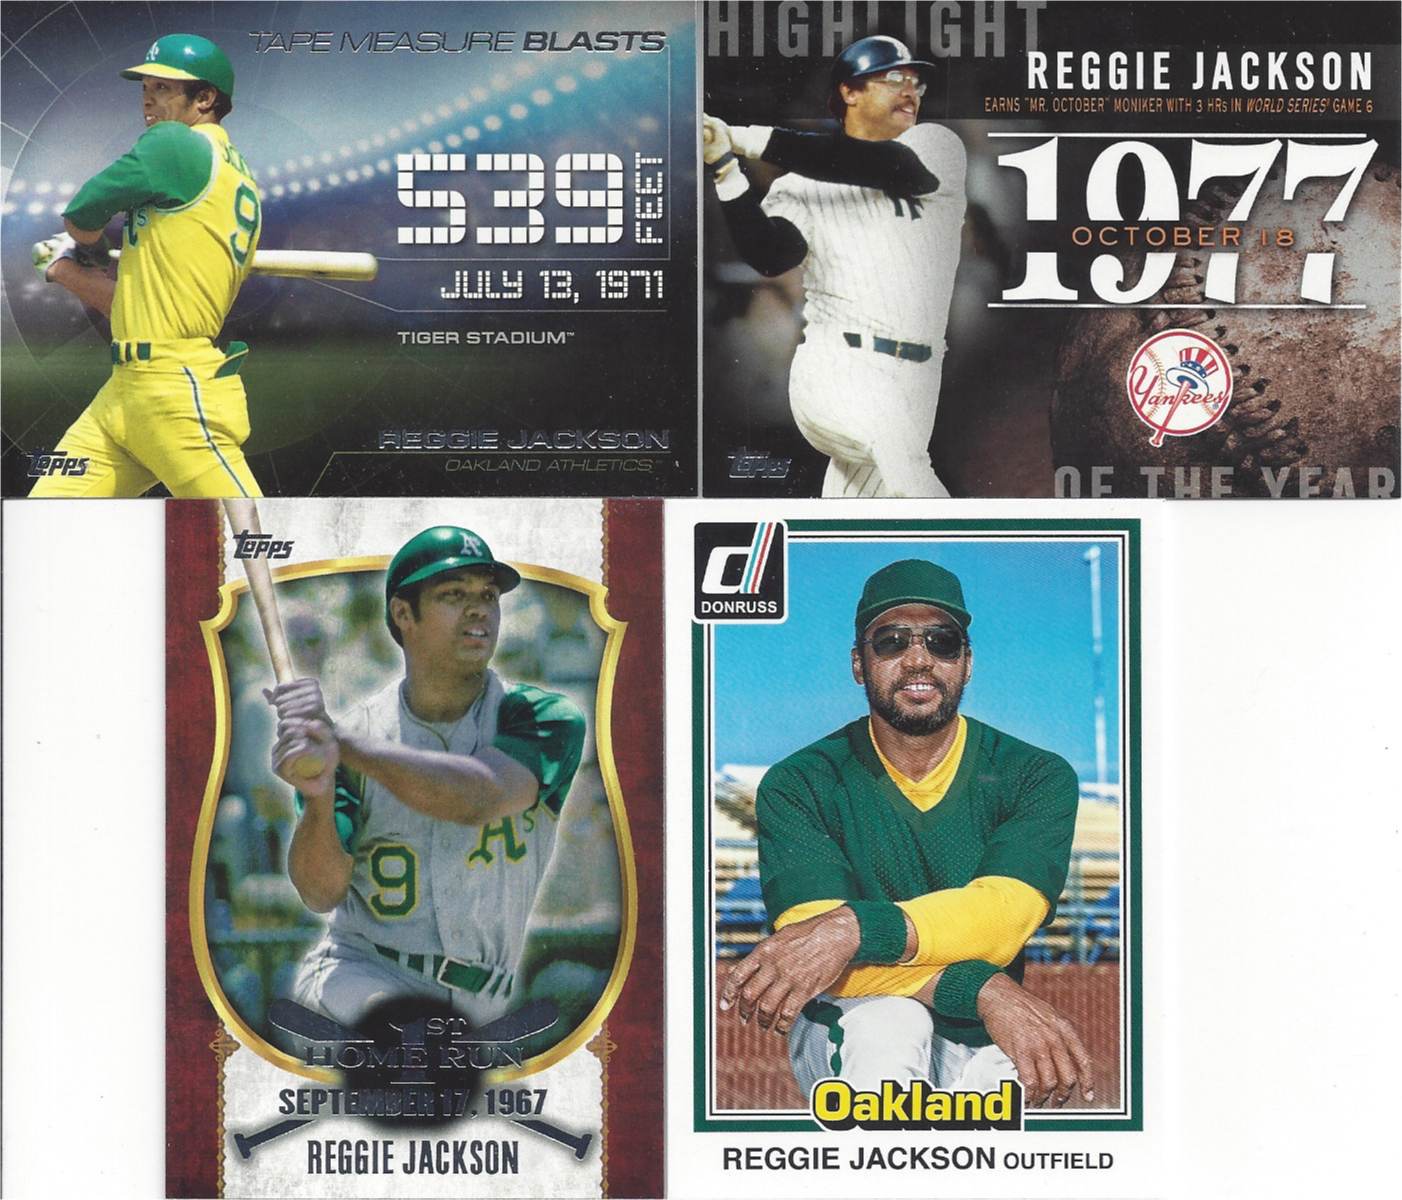 2f744f723b40 Here are a few more inserts and a short print base cards. My favorite cards  of Reggie show him in his #9 uniform during his first stint with the A's.  He is ...